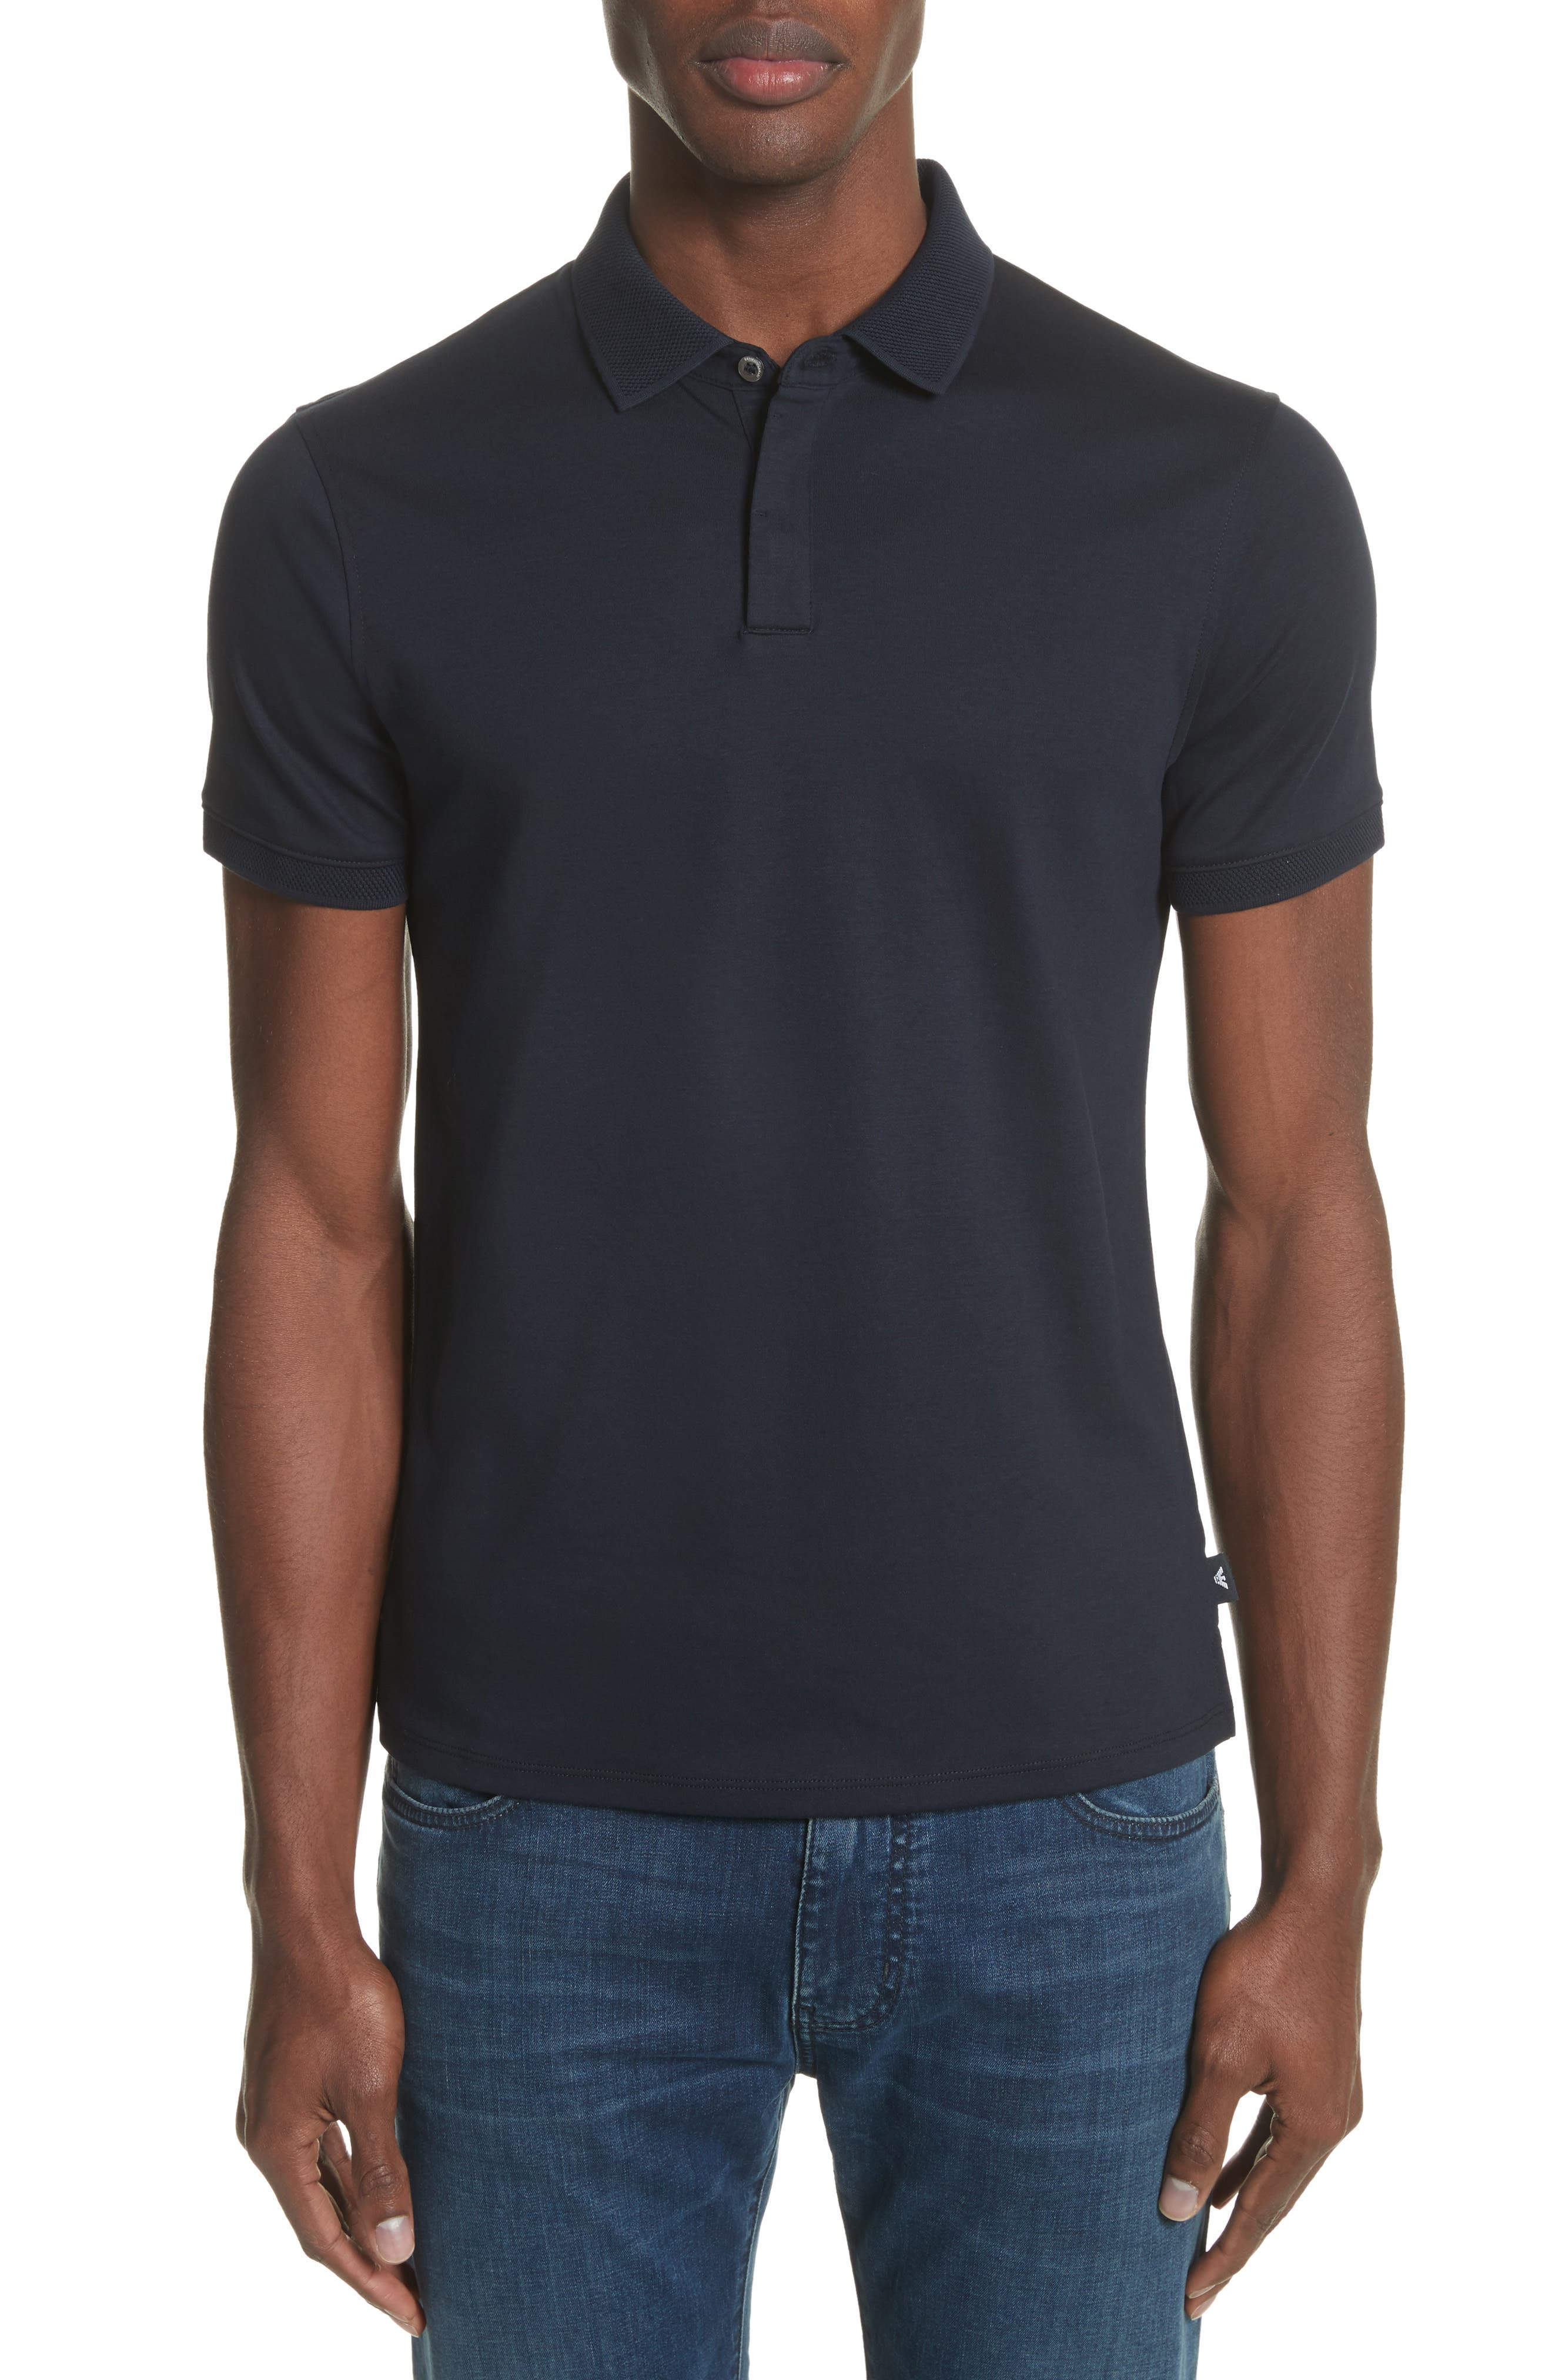 Men'S Solid Jersey Polo Shirt in Solid Dark Blue